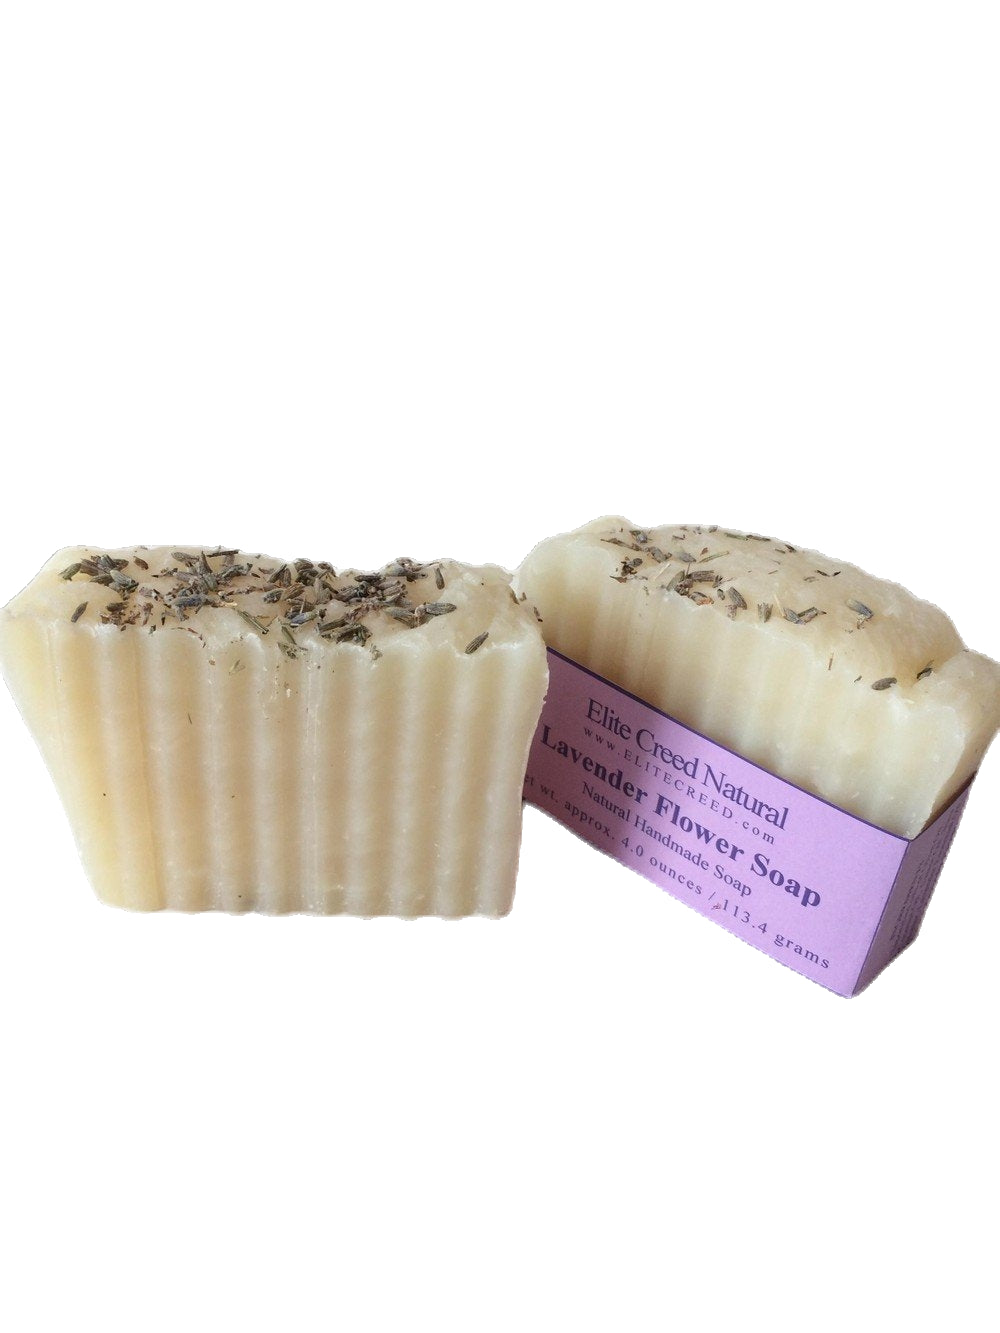 Lavender Flower Handmade Soap - ECNSoap